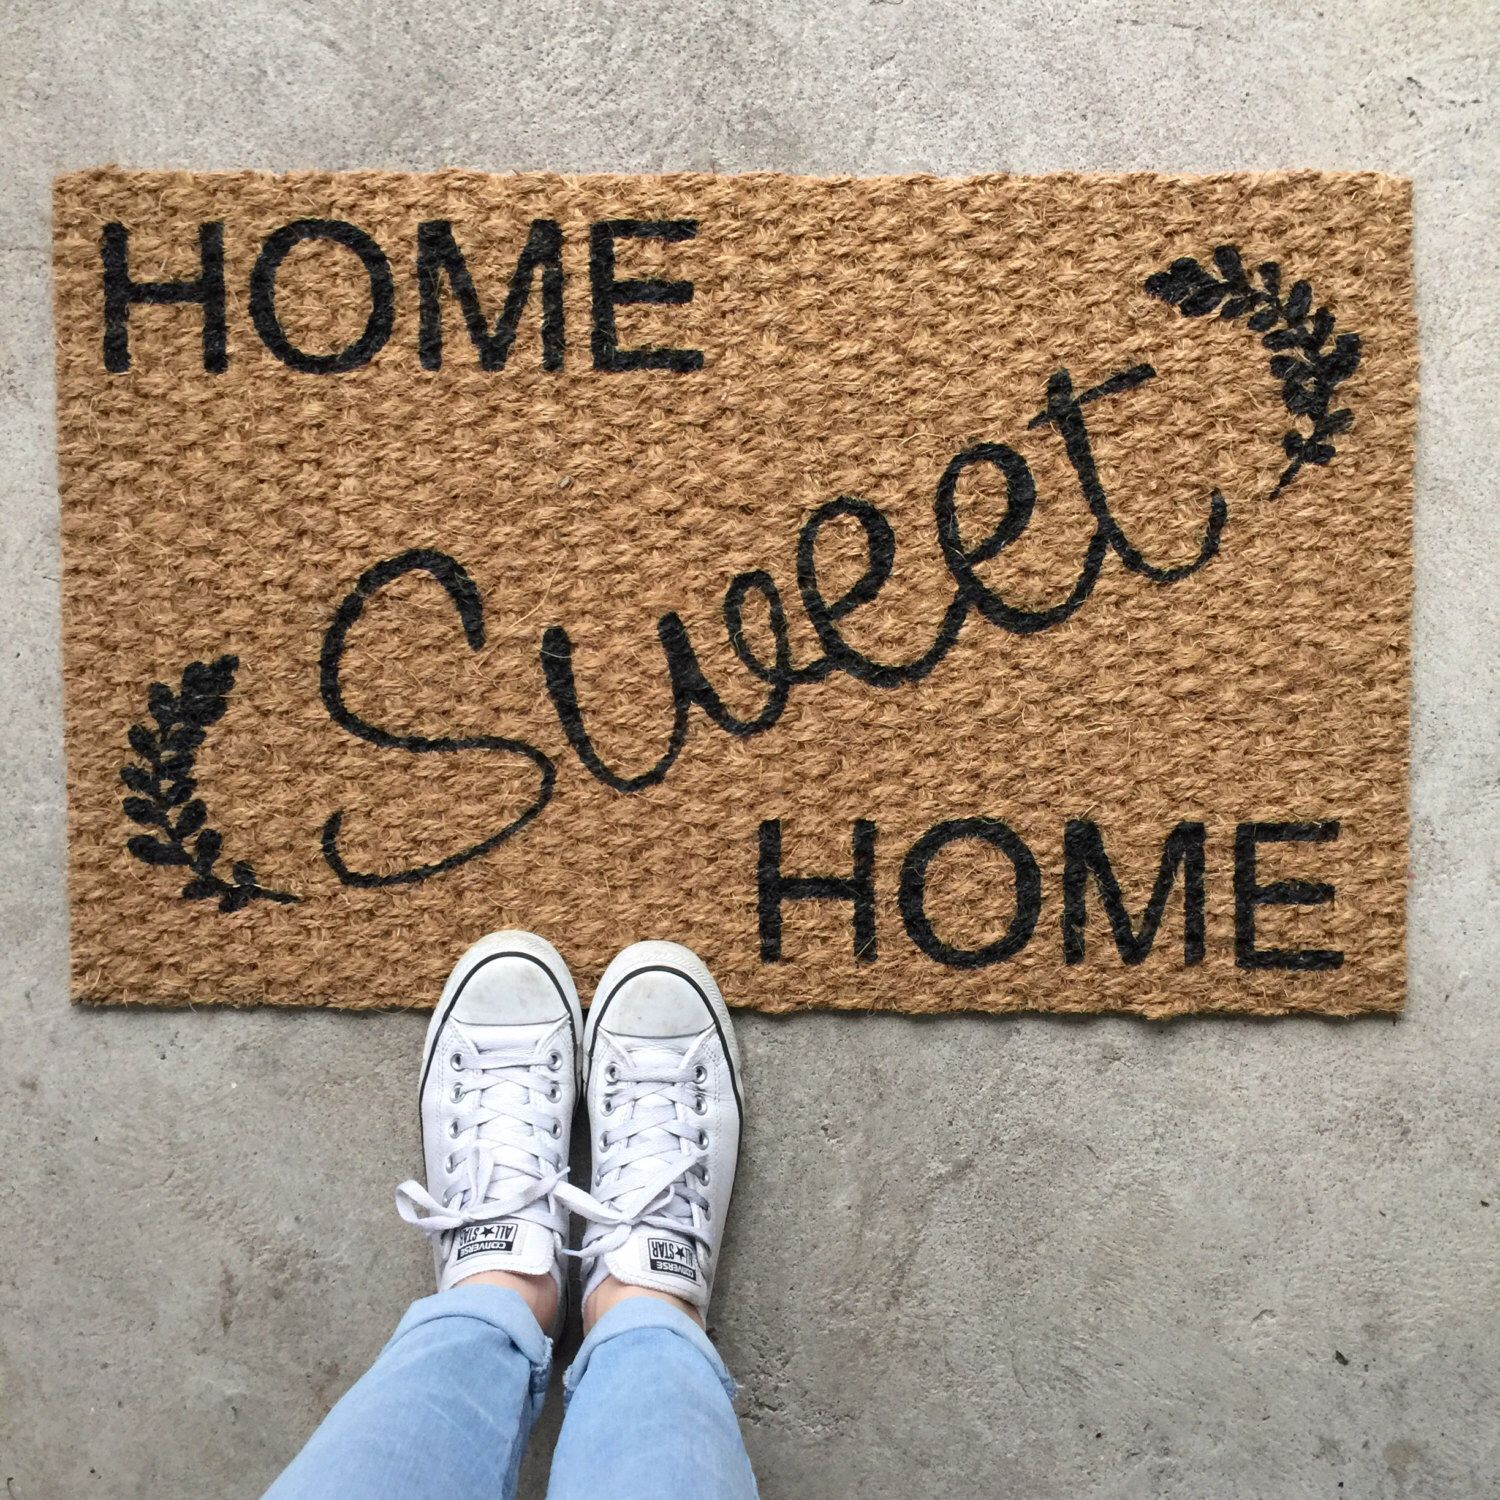 Doormat Funny Custom Doormat Funny Doormat Welcome Doormat